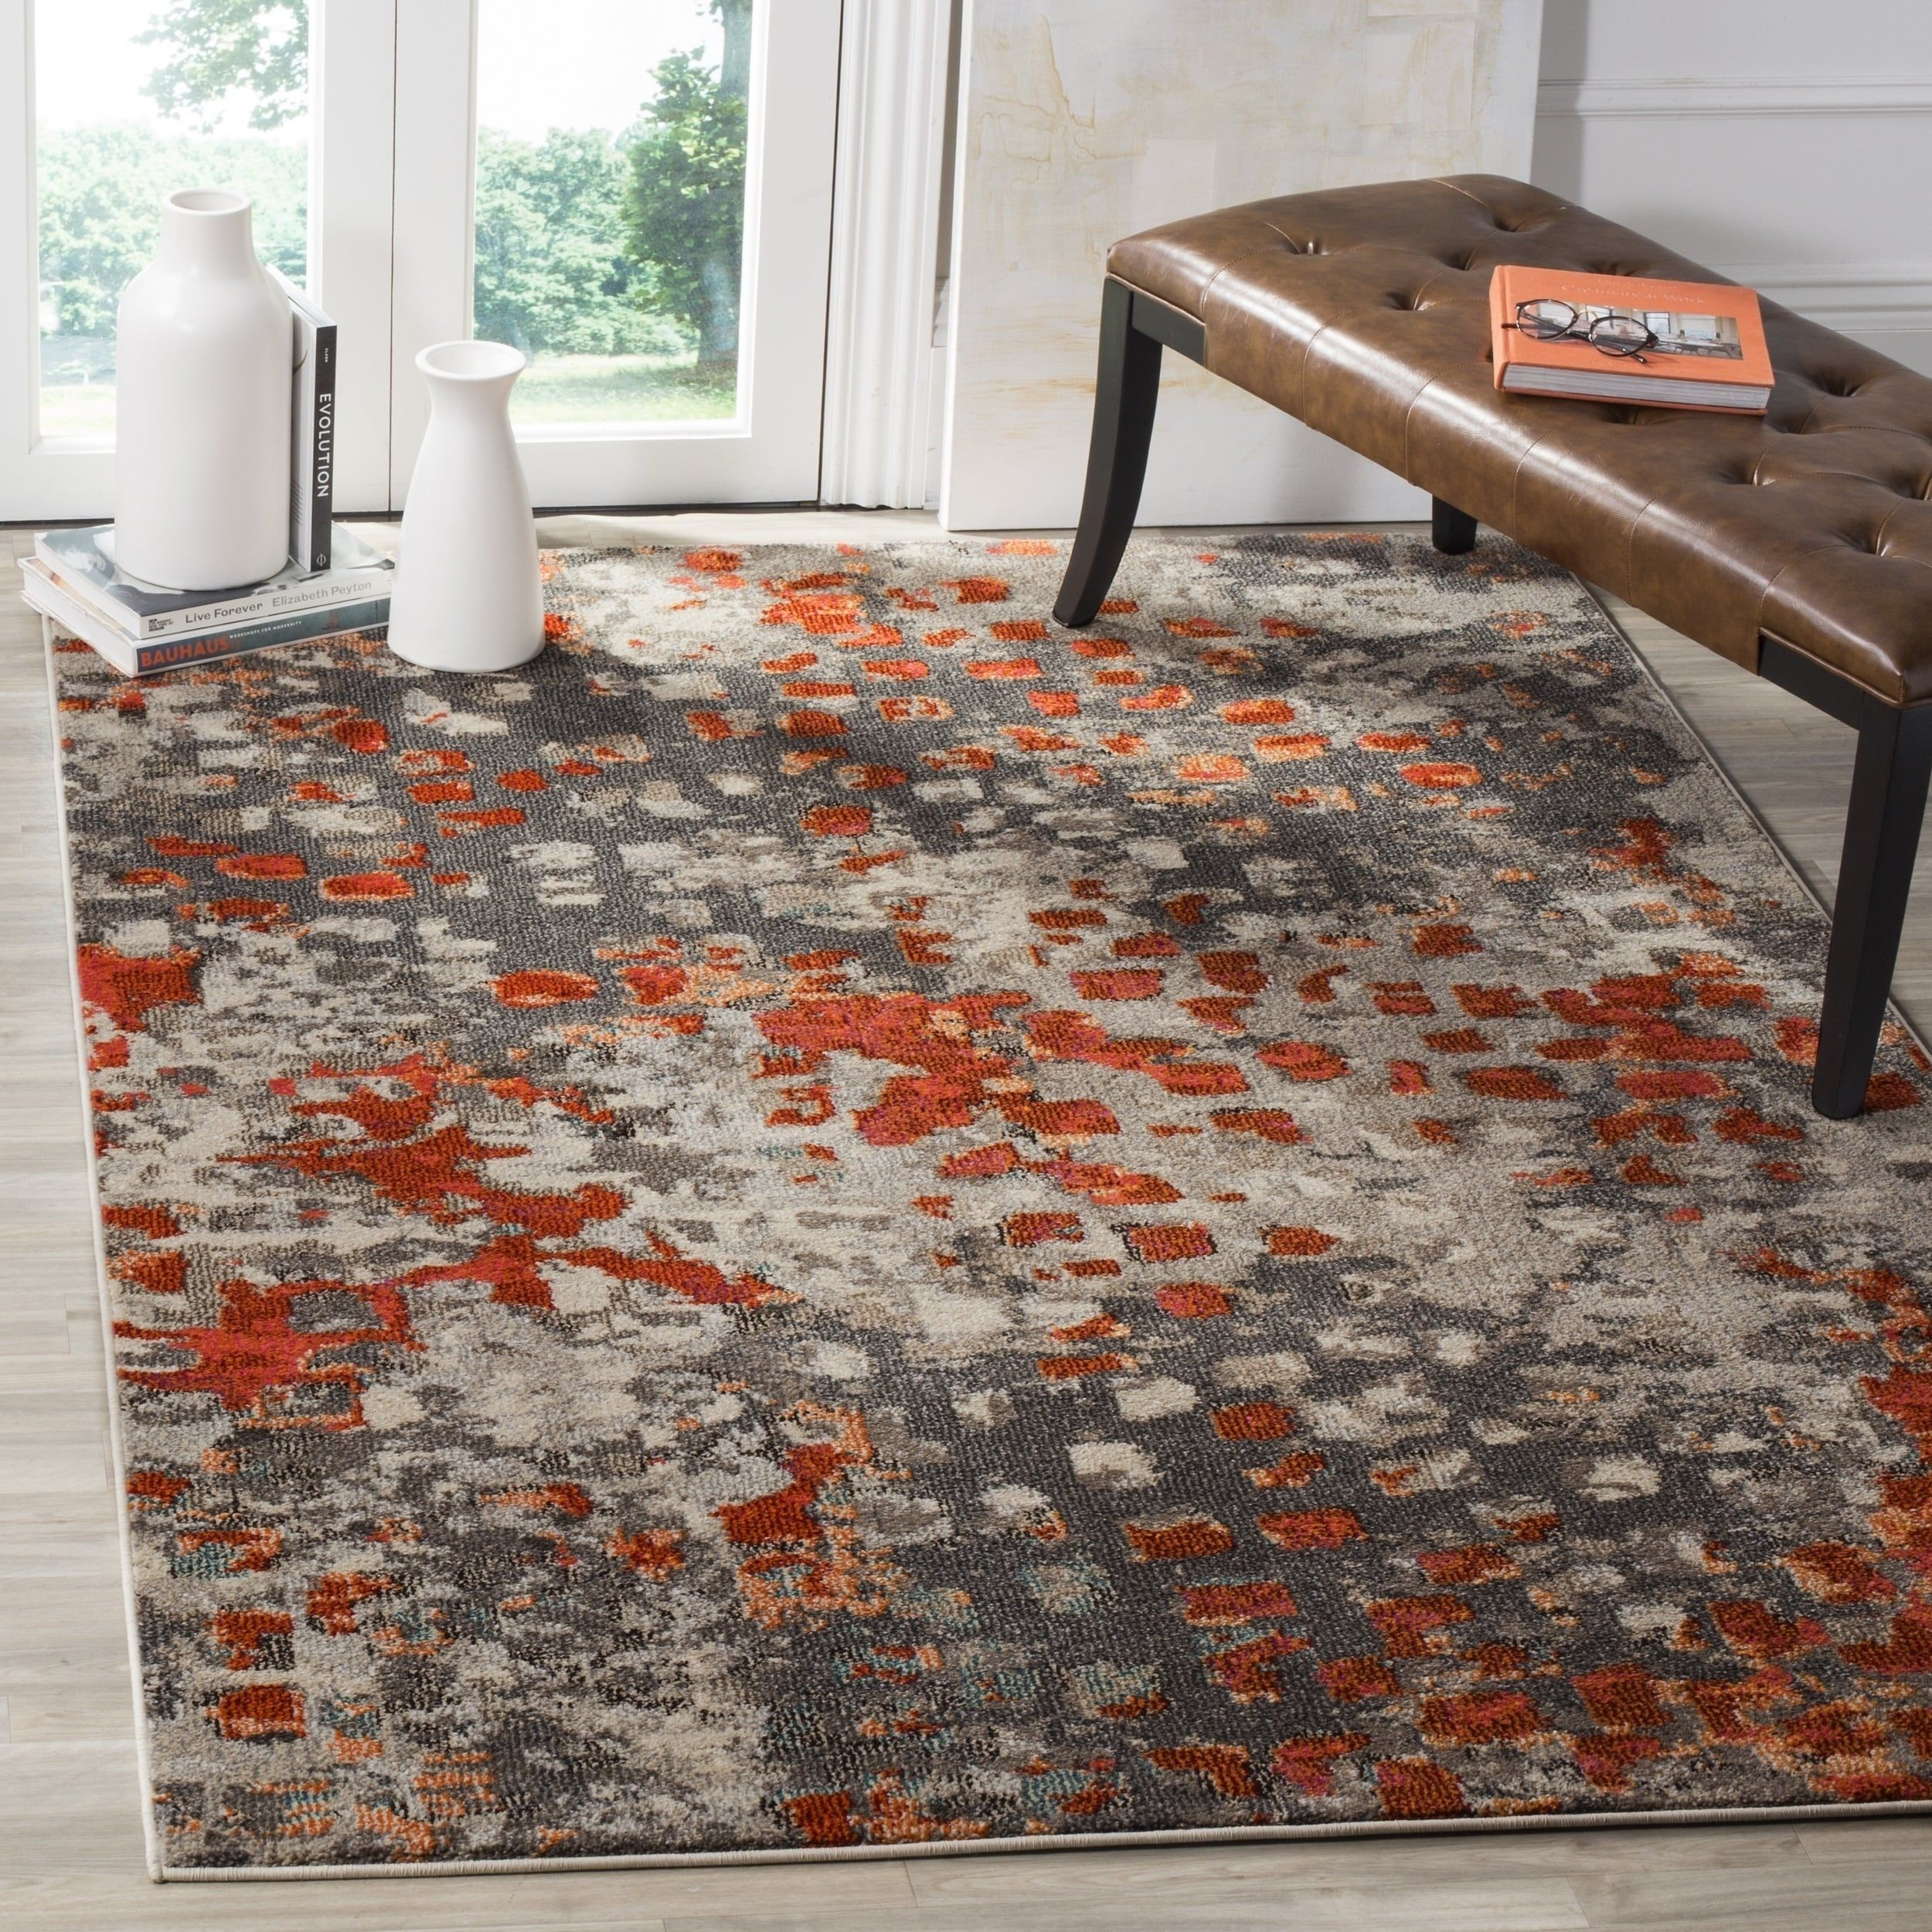 Safavieh Monaco Abstract Watercolor Grey Orange Distressed Rug 10 X 14 Mnc225h 10 Size 10 X 14 Products Orange Rugs Area Rugs Colorful Rugs